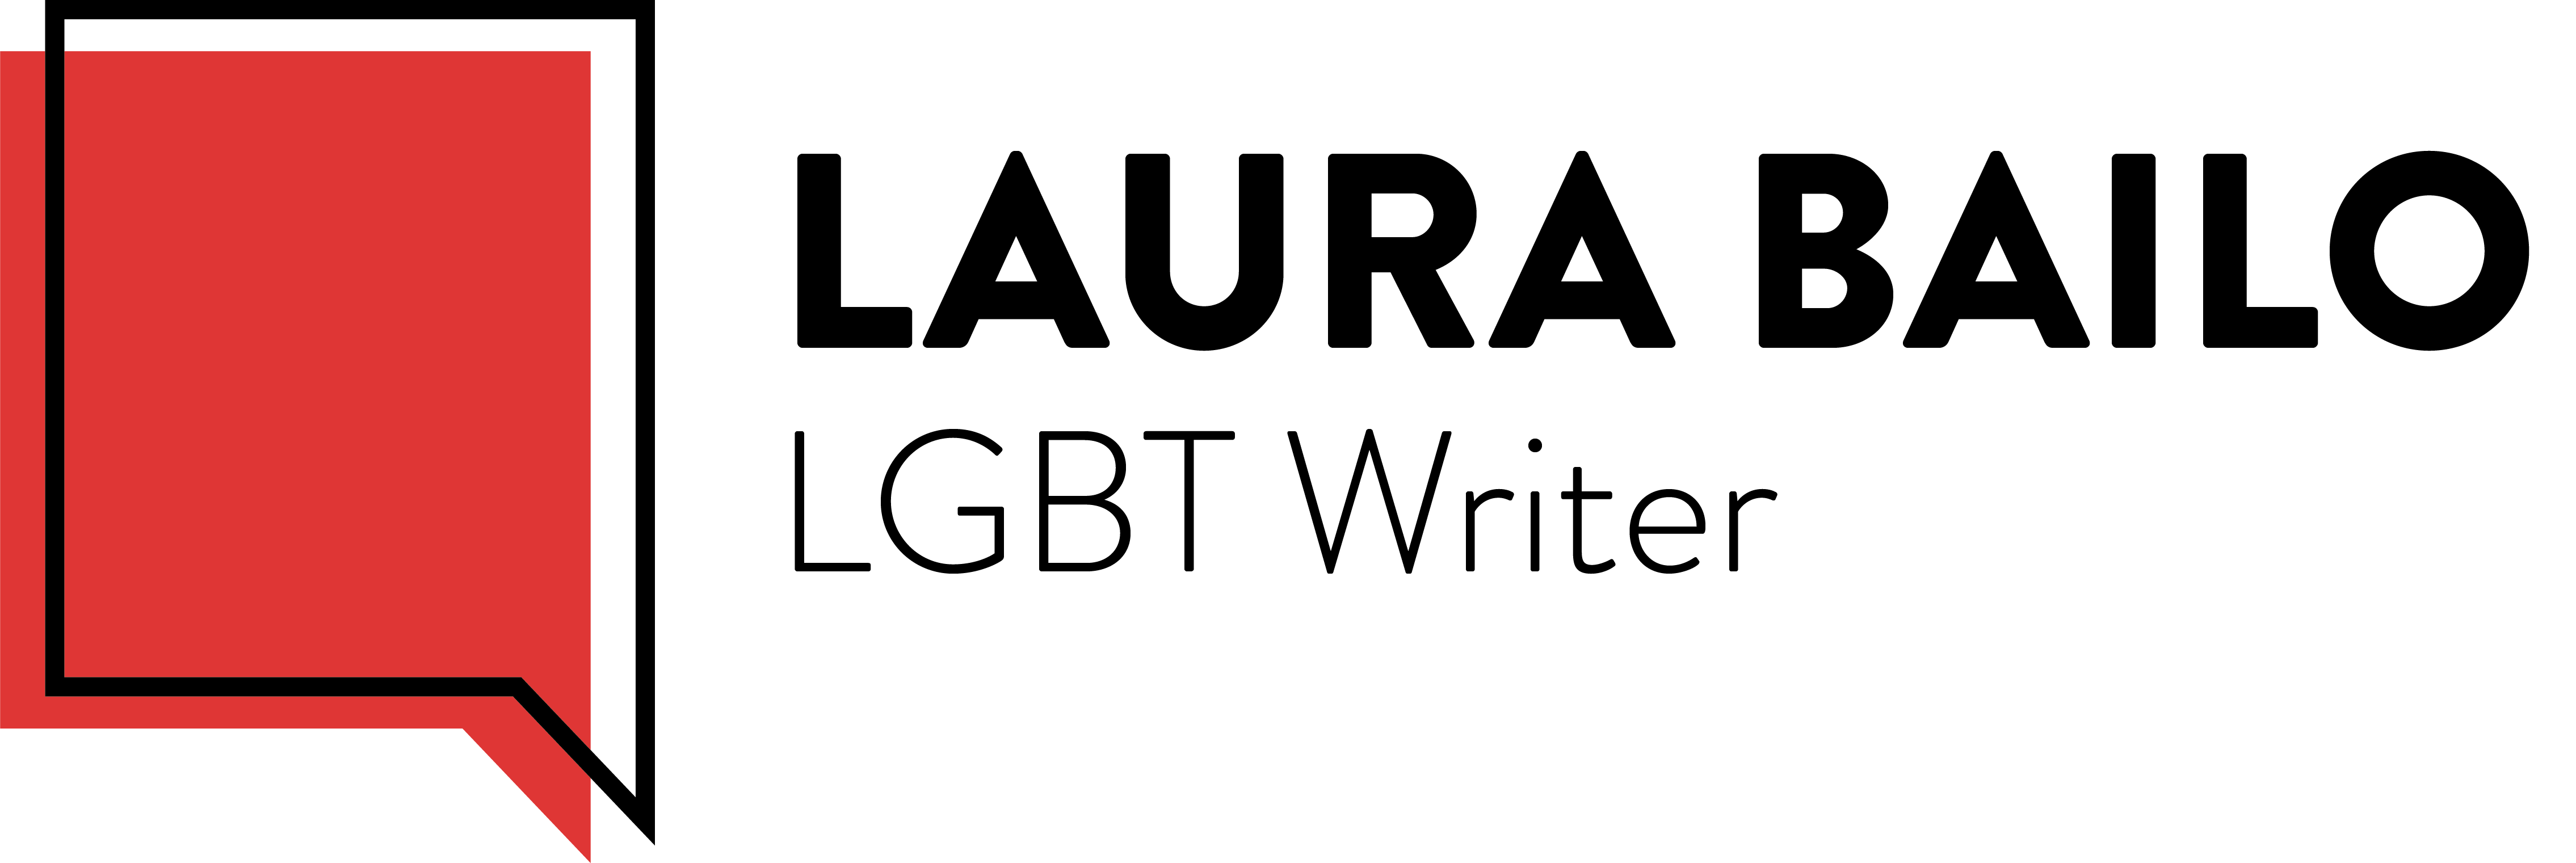 Official site of Laura Bailo, Spanish writer of queer romance and translator of queer literature.